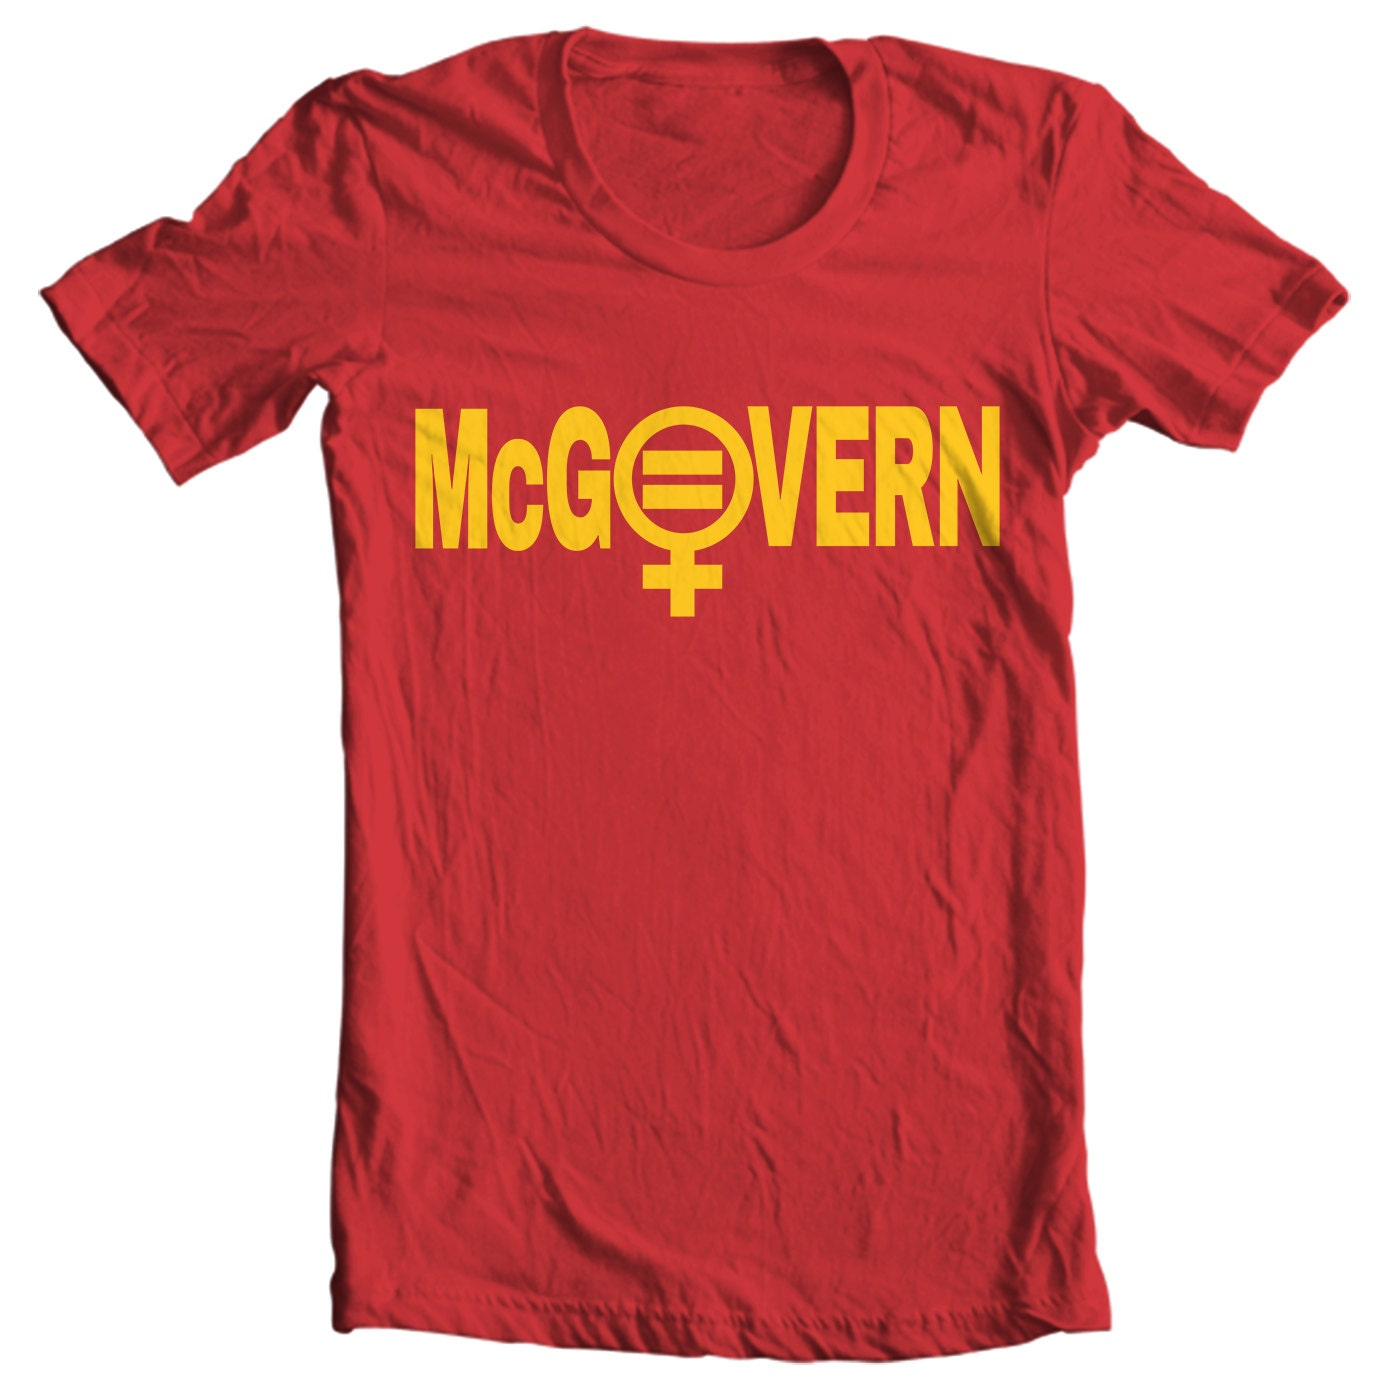 George McGovern Campaign Button Shirt